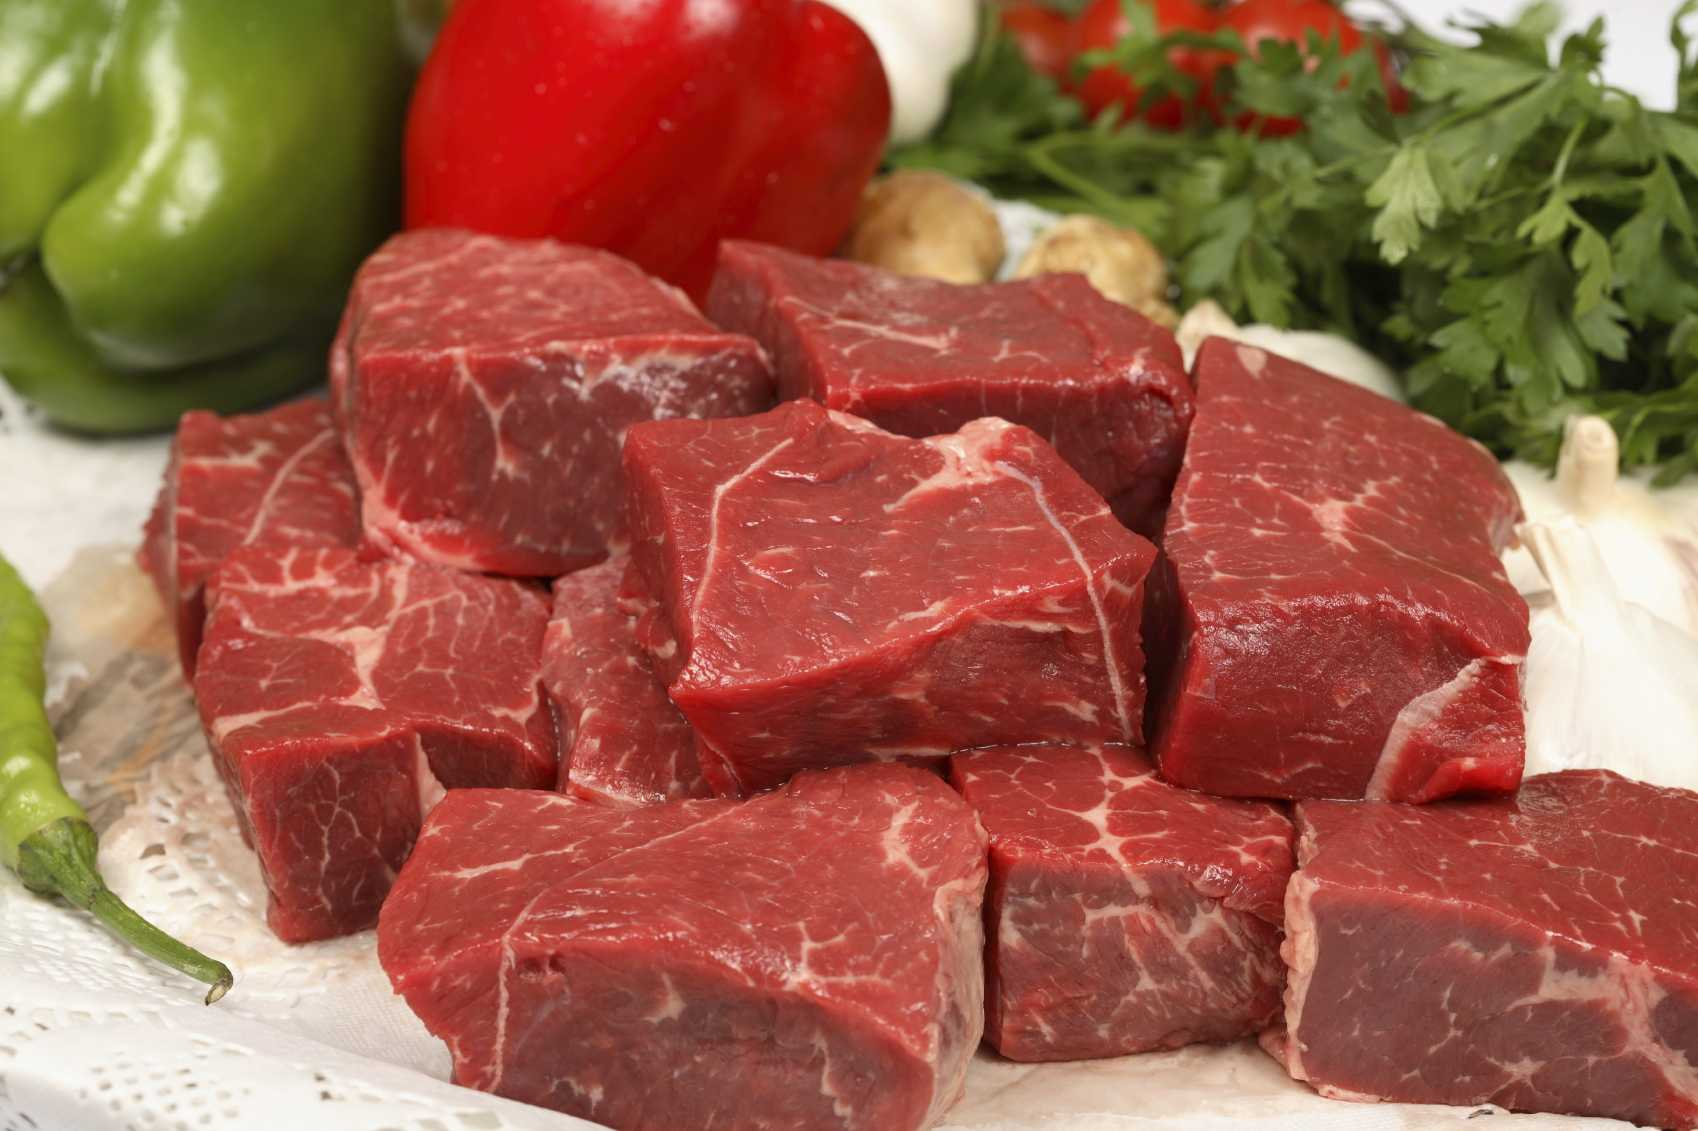 Red Meat - Health Benefits, Dangers, What is Red Meat